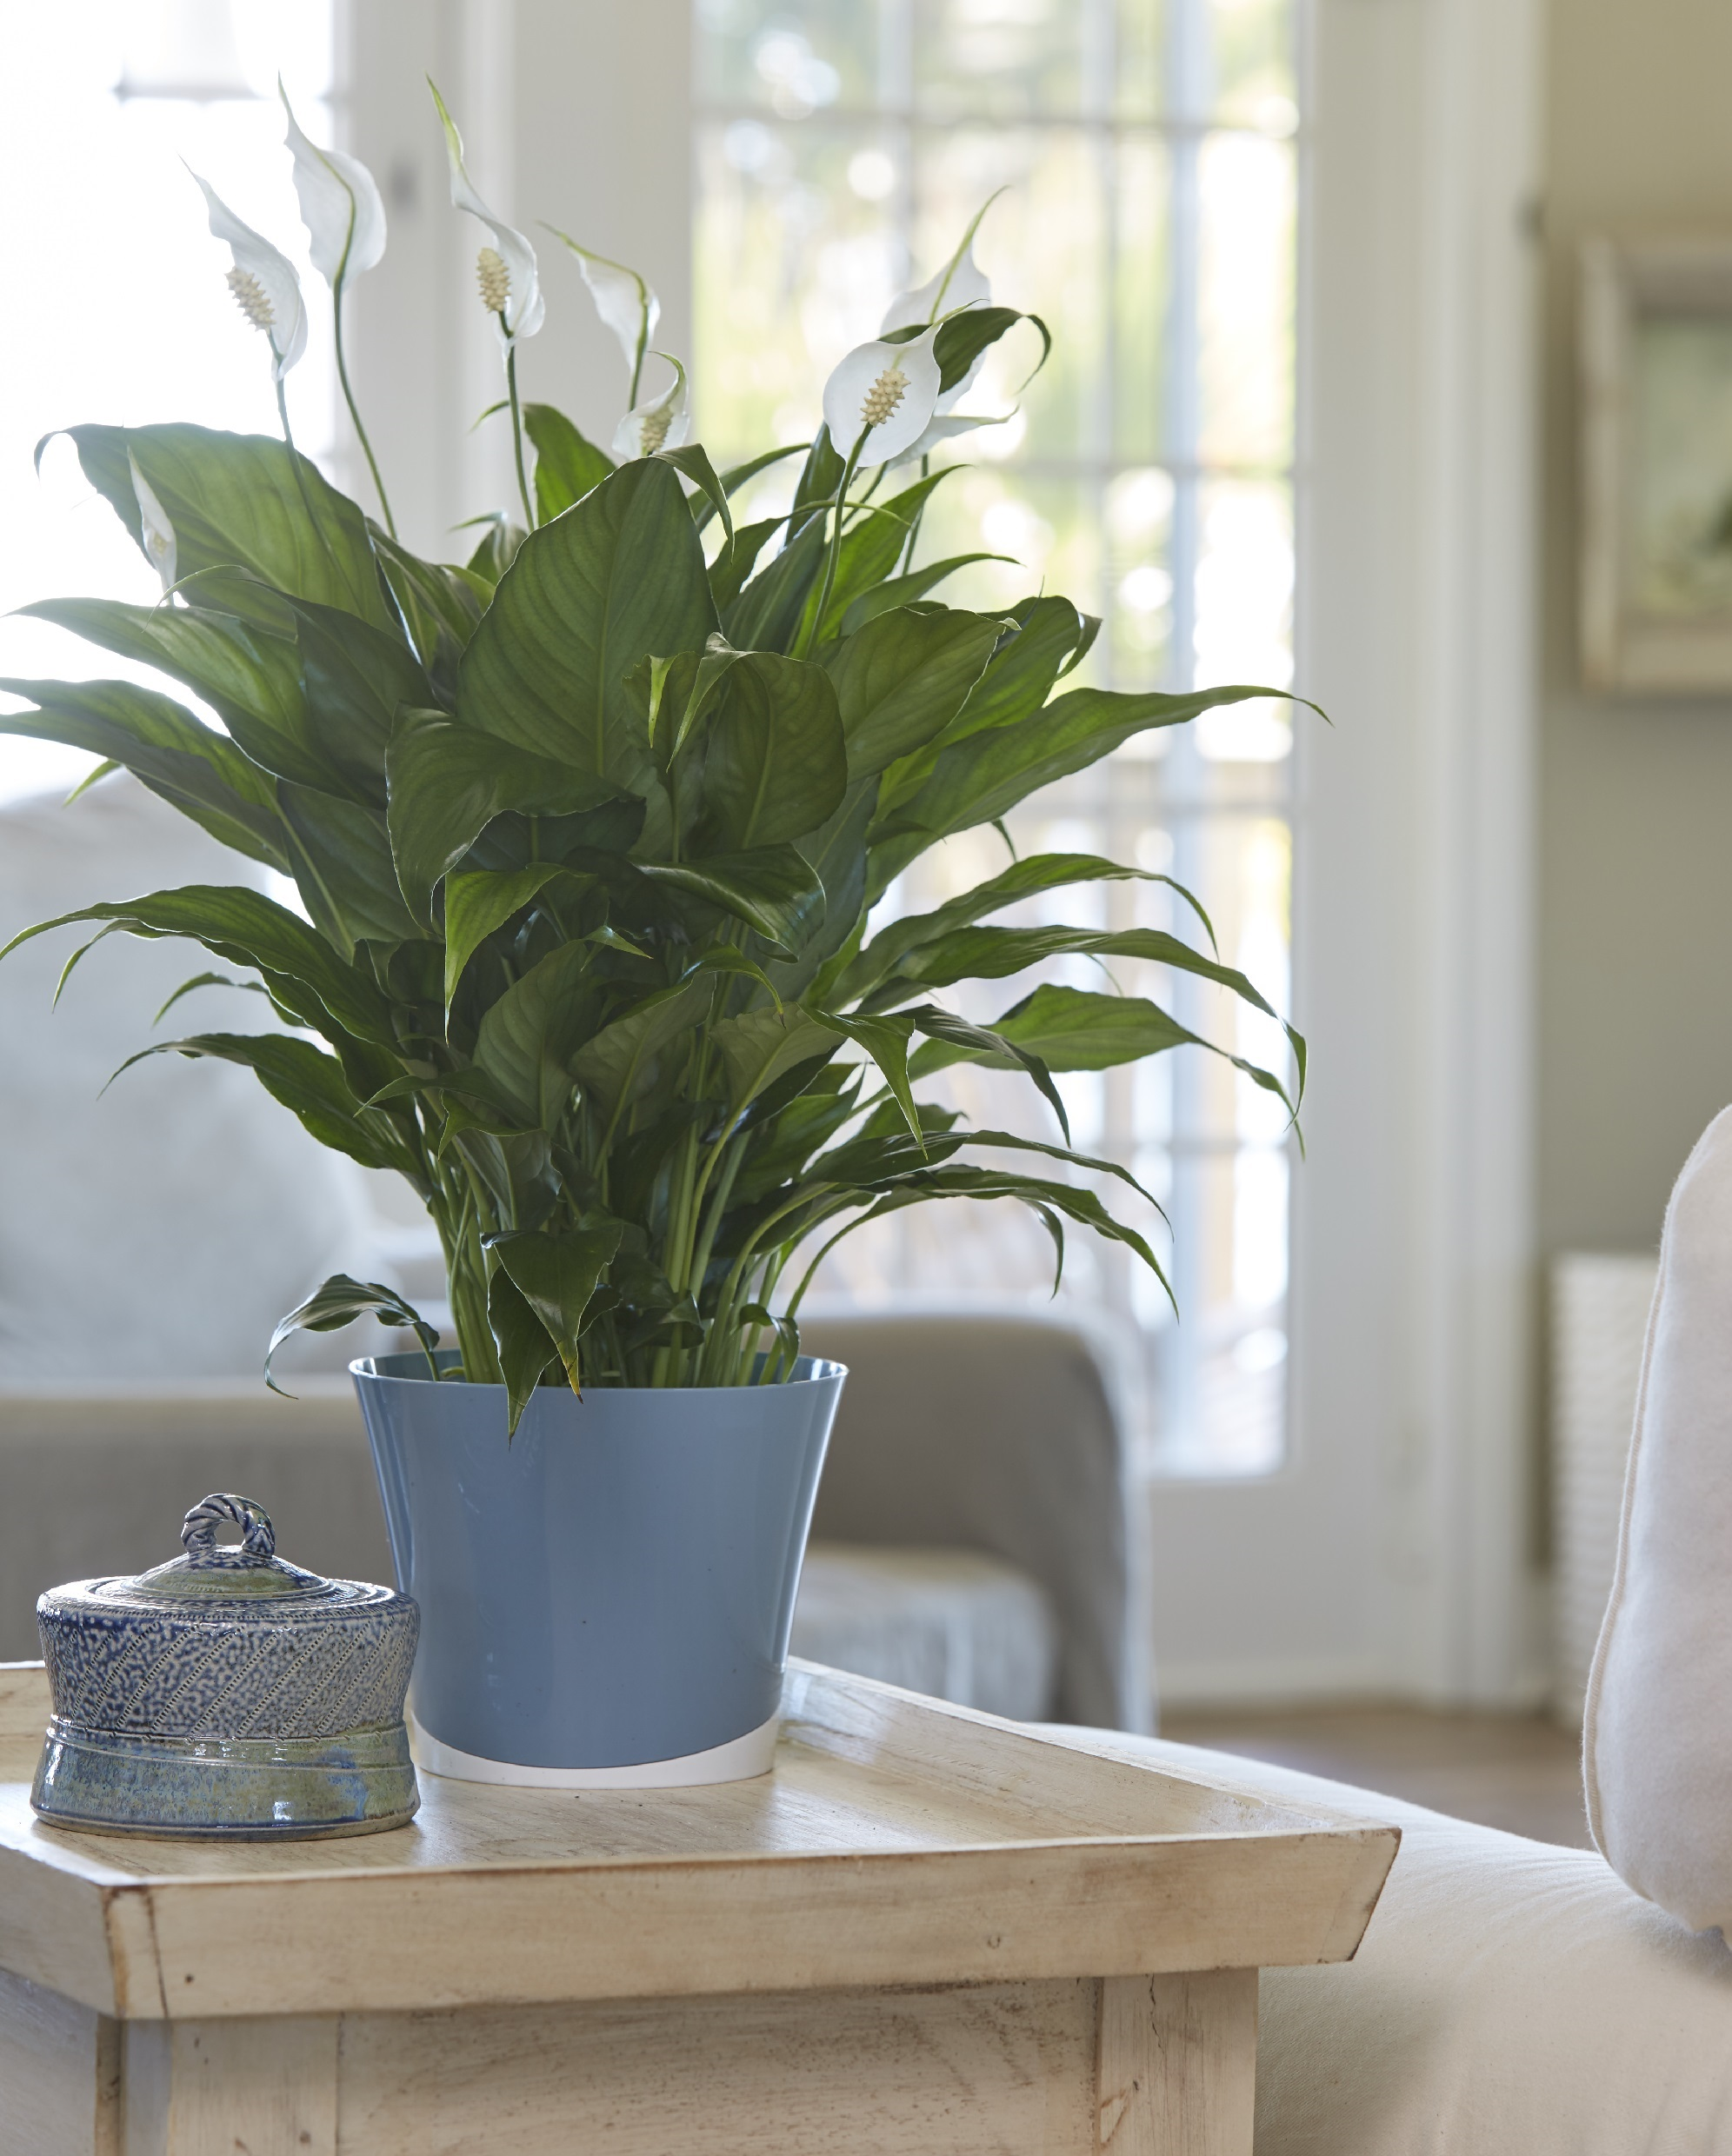 New Study Highlights Reasons To Celebrate Indoor Plant